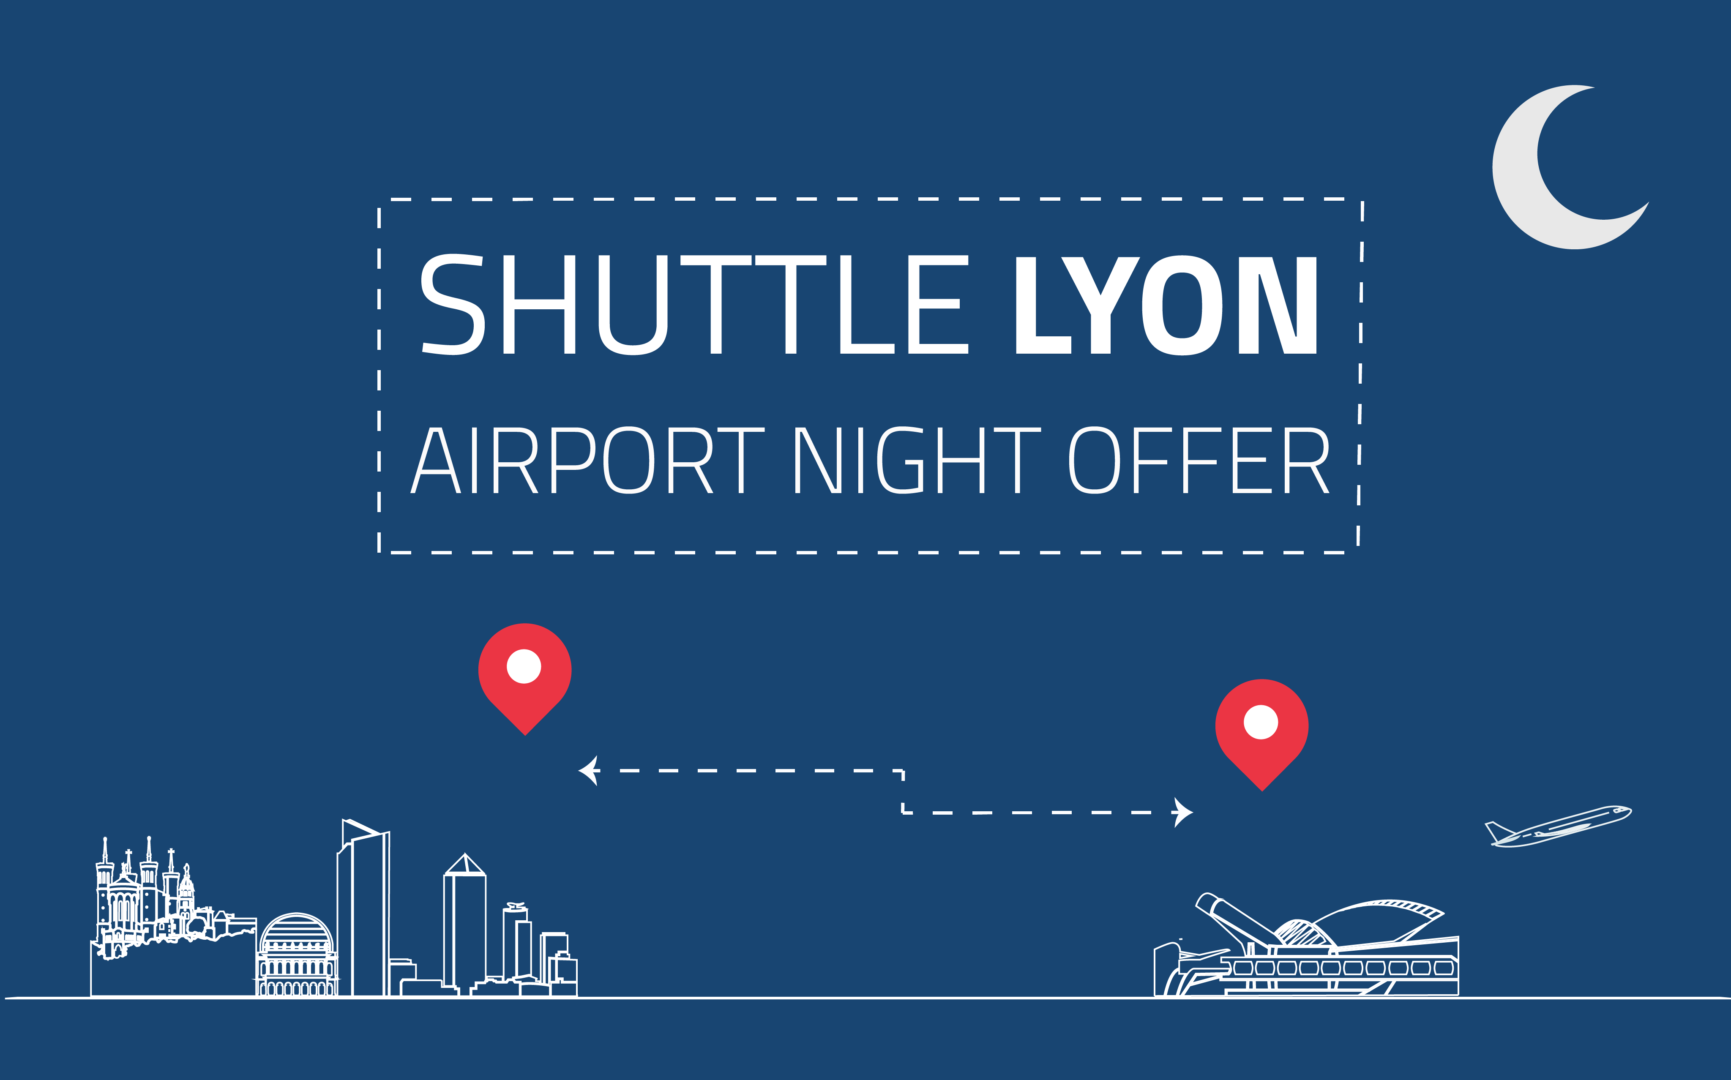 Shuttle Lyon Airport at Night